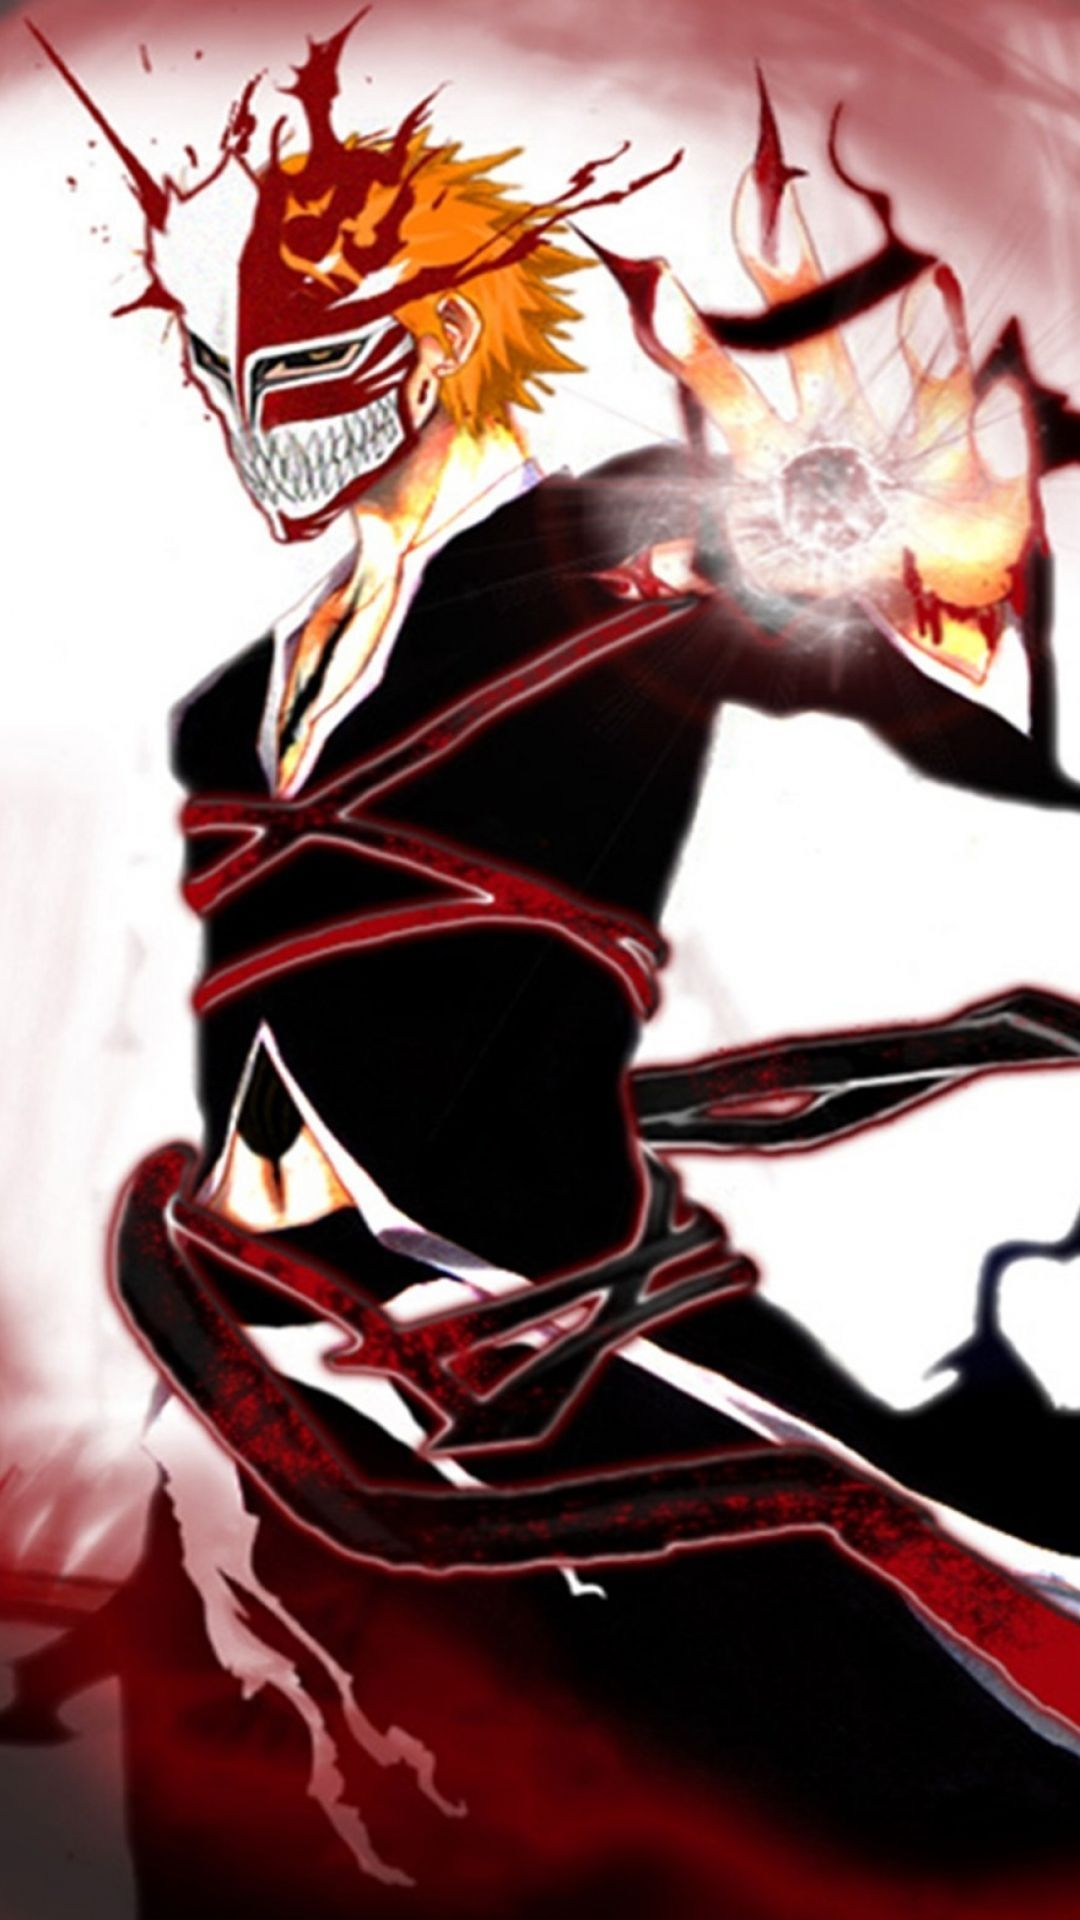 Bleach Wallpaper Ios In 2020 Bleach Anime Bleach Anime Ichigo